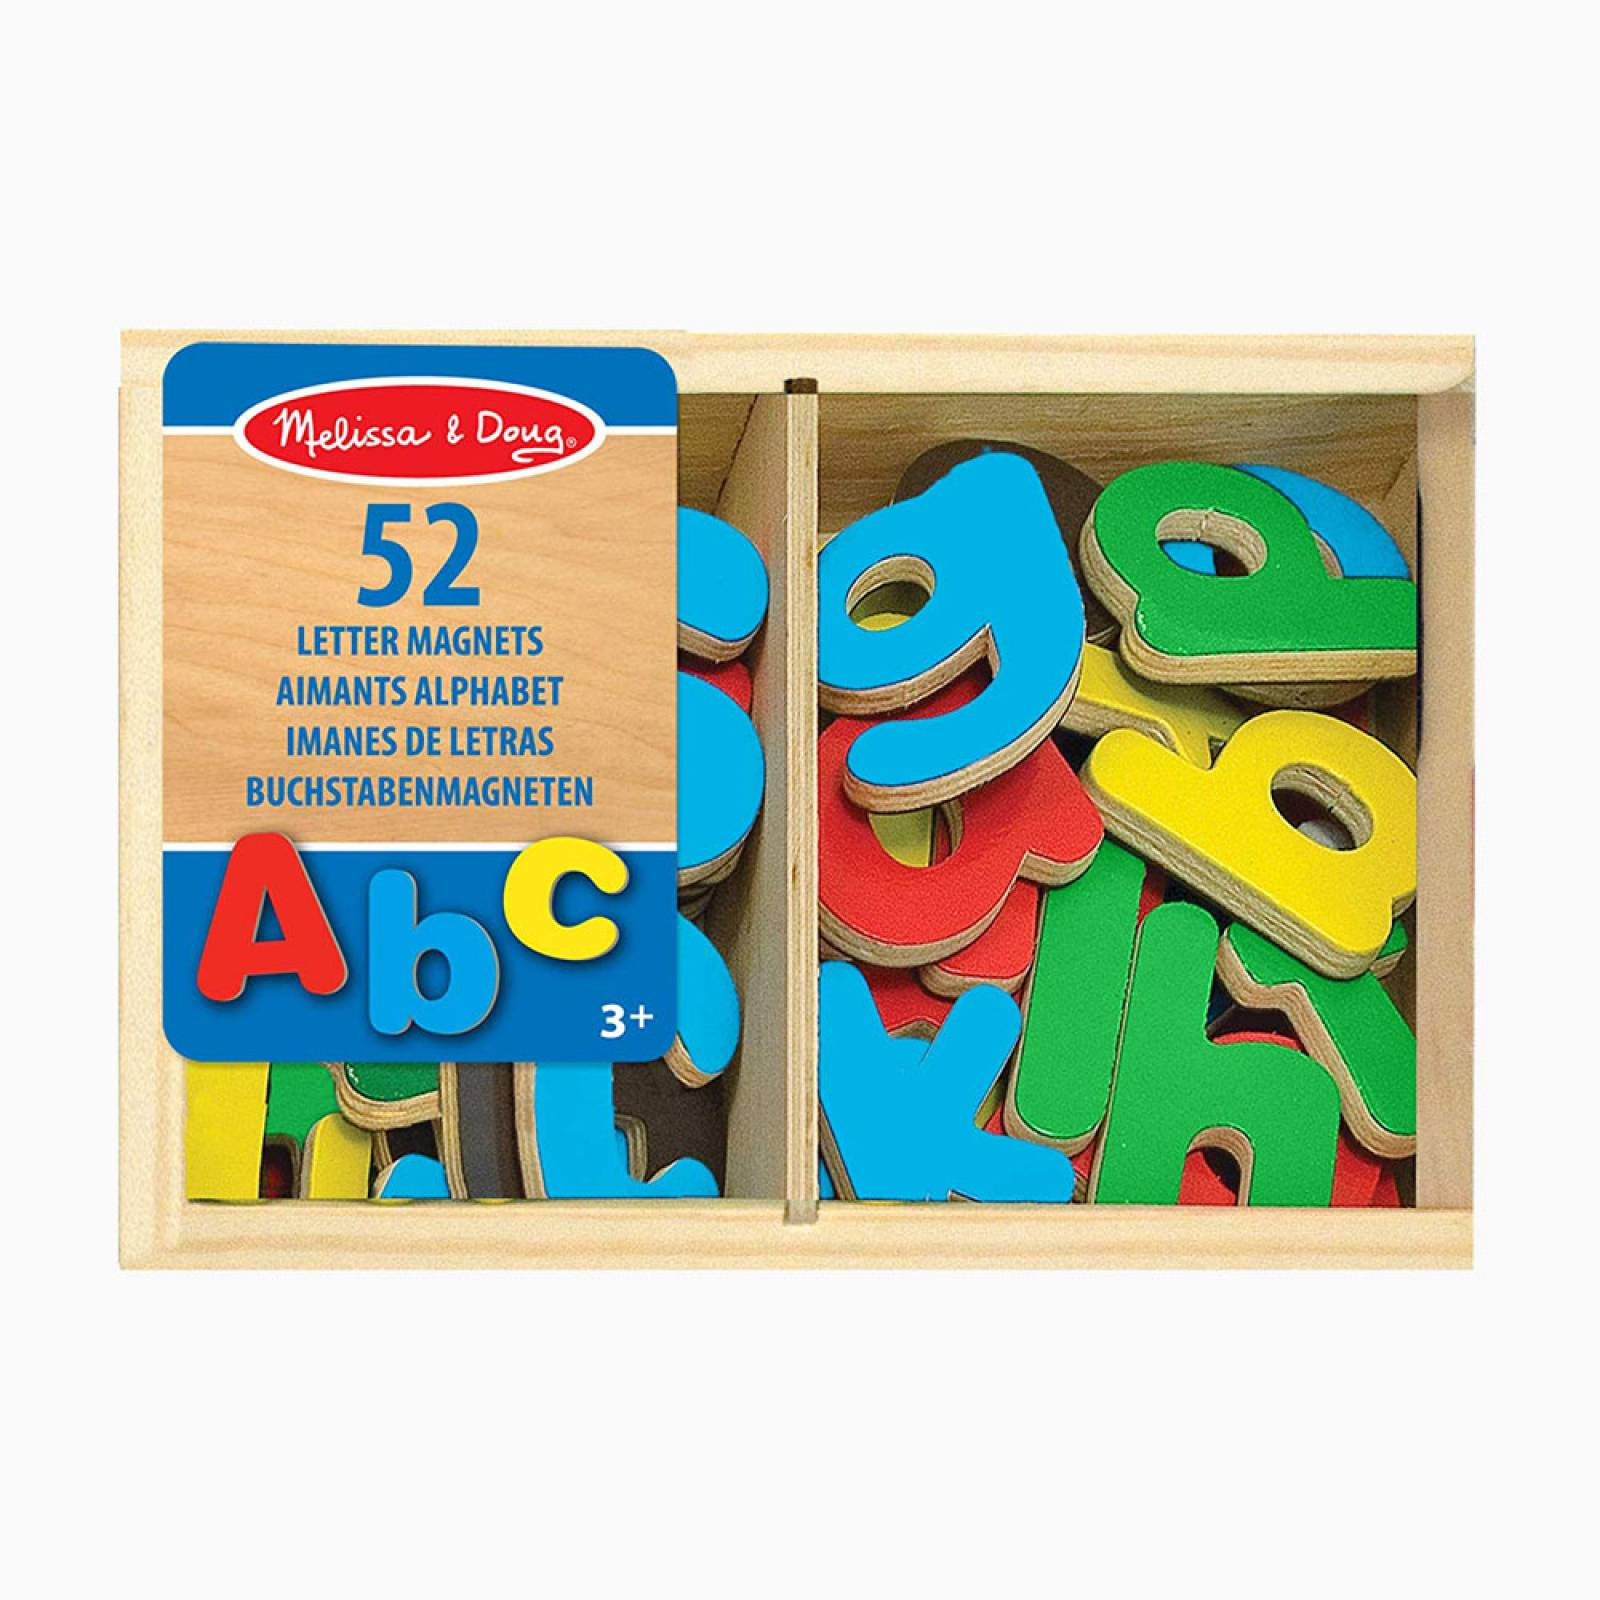 Wooden Letter Alphabet Magnets 3+